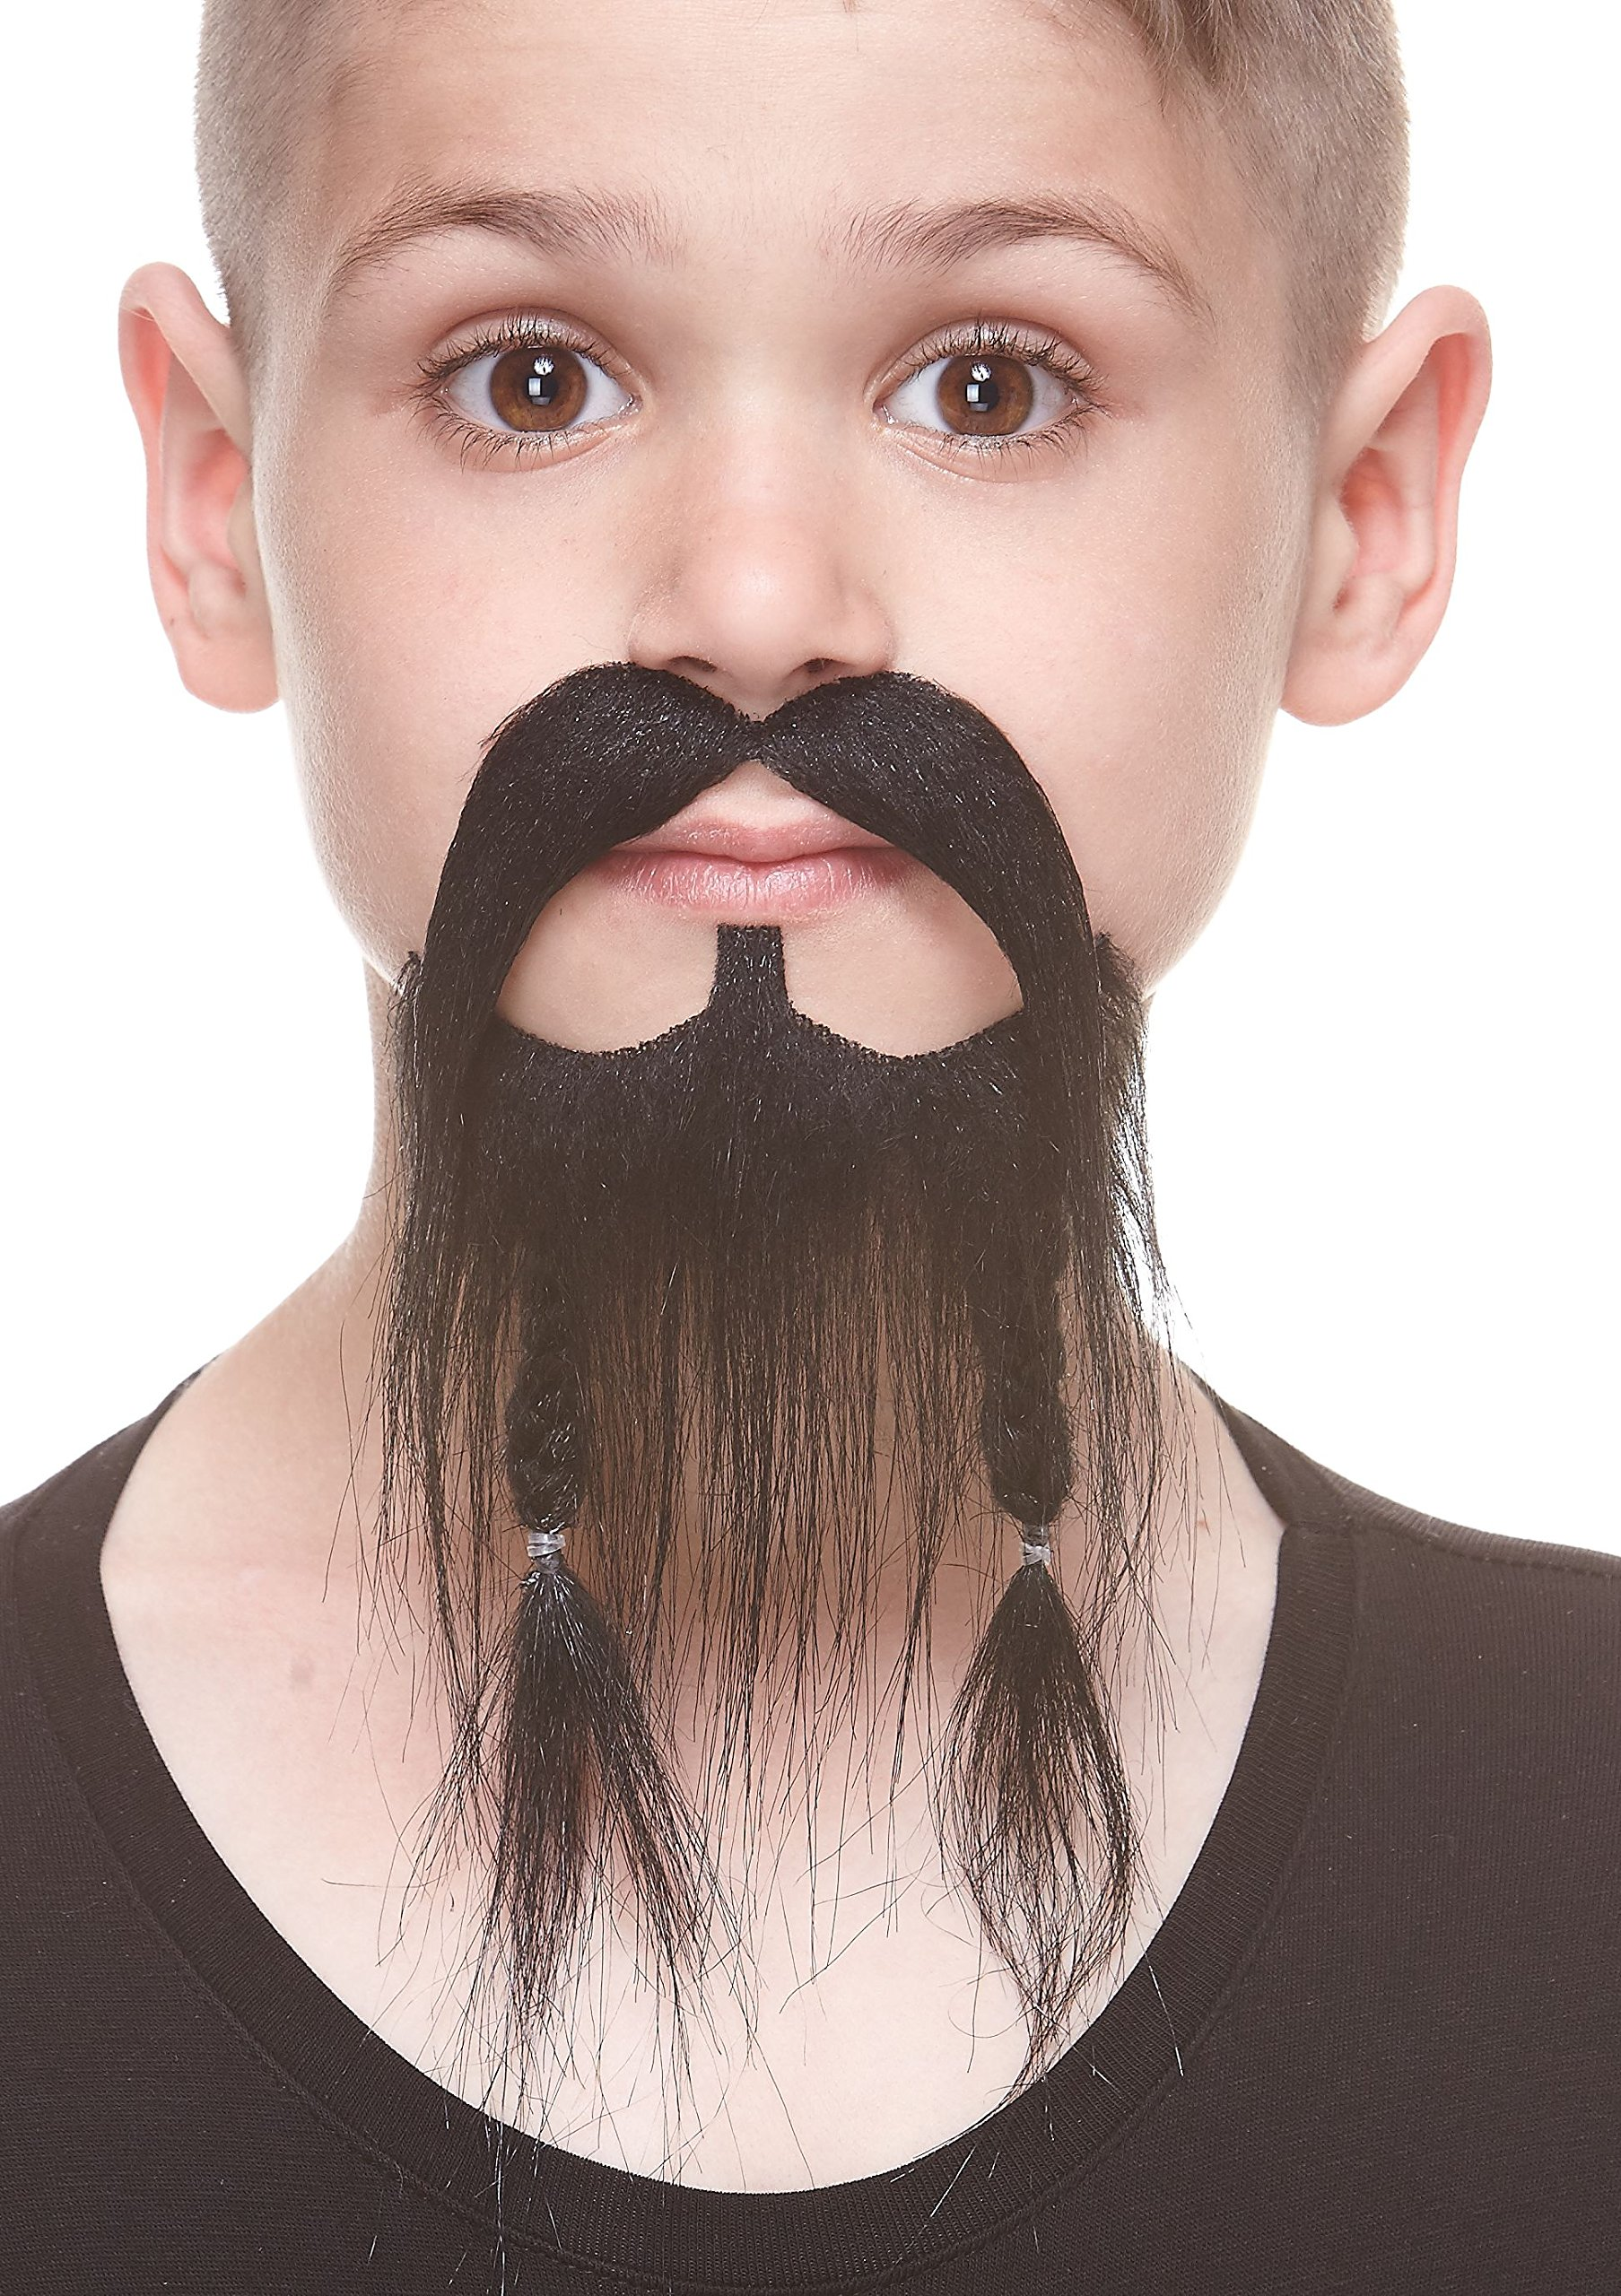 Mustaches Self Adhesive, Novelty, Fake, Small, Braided Pirate Beard, Black Color